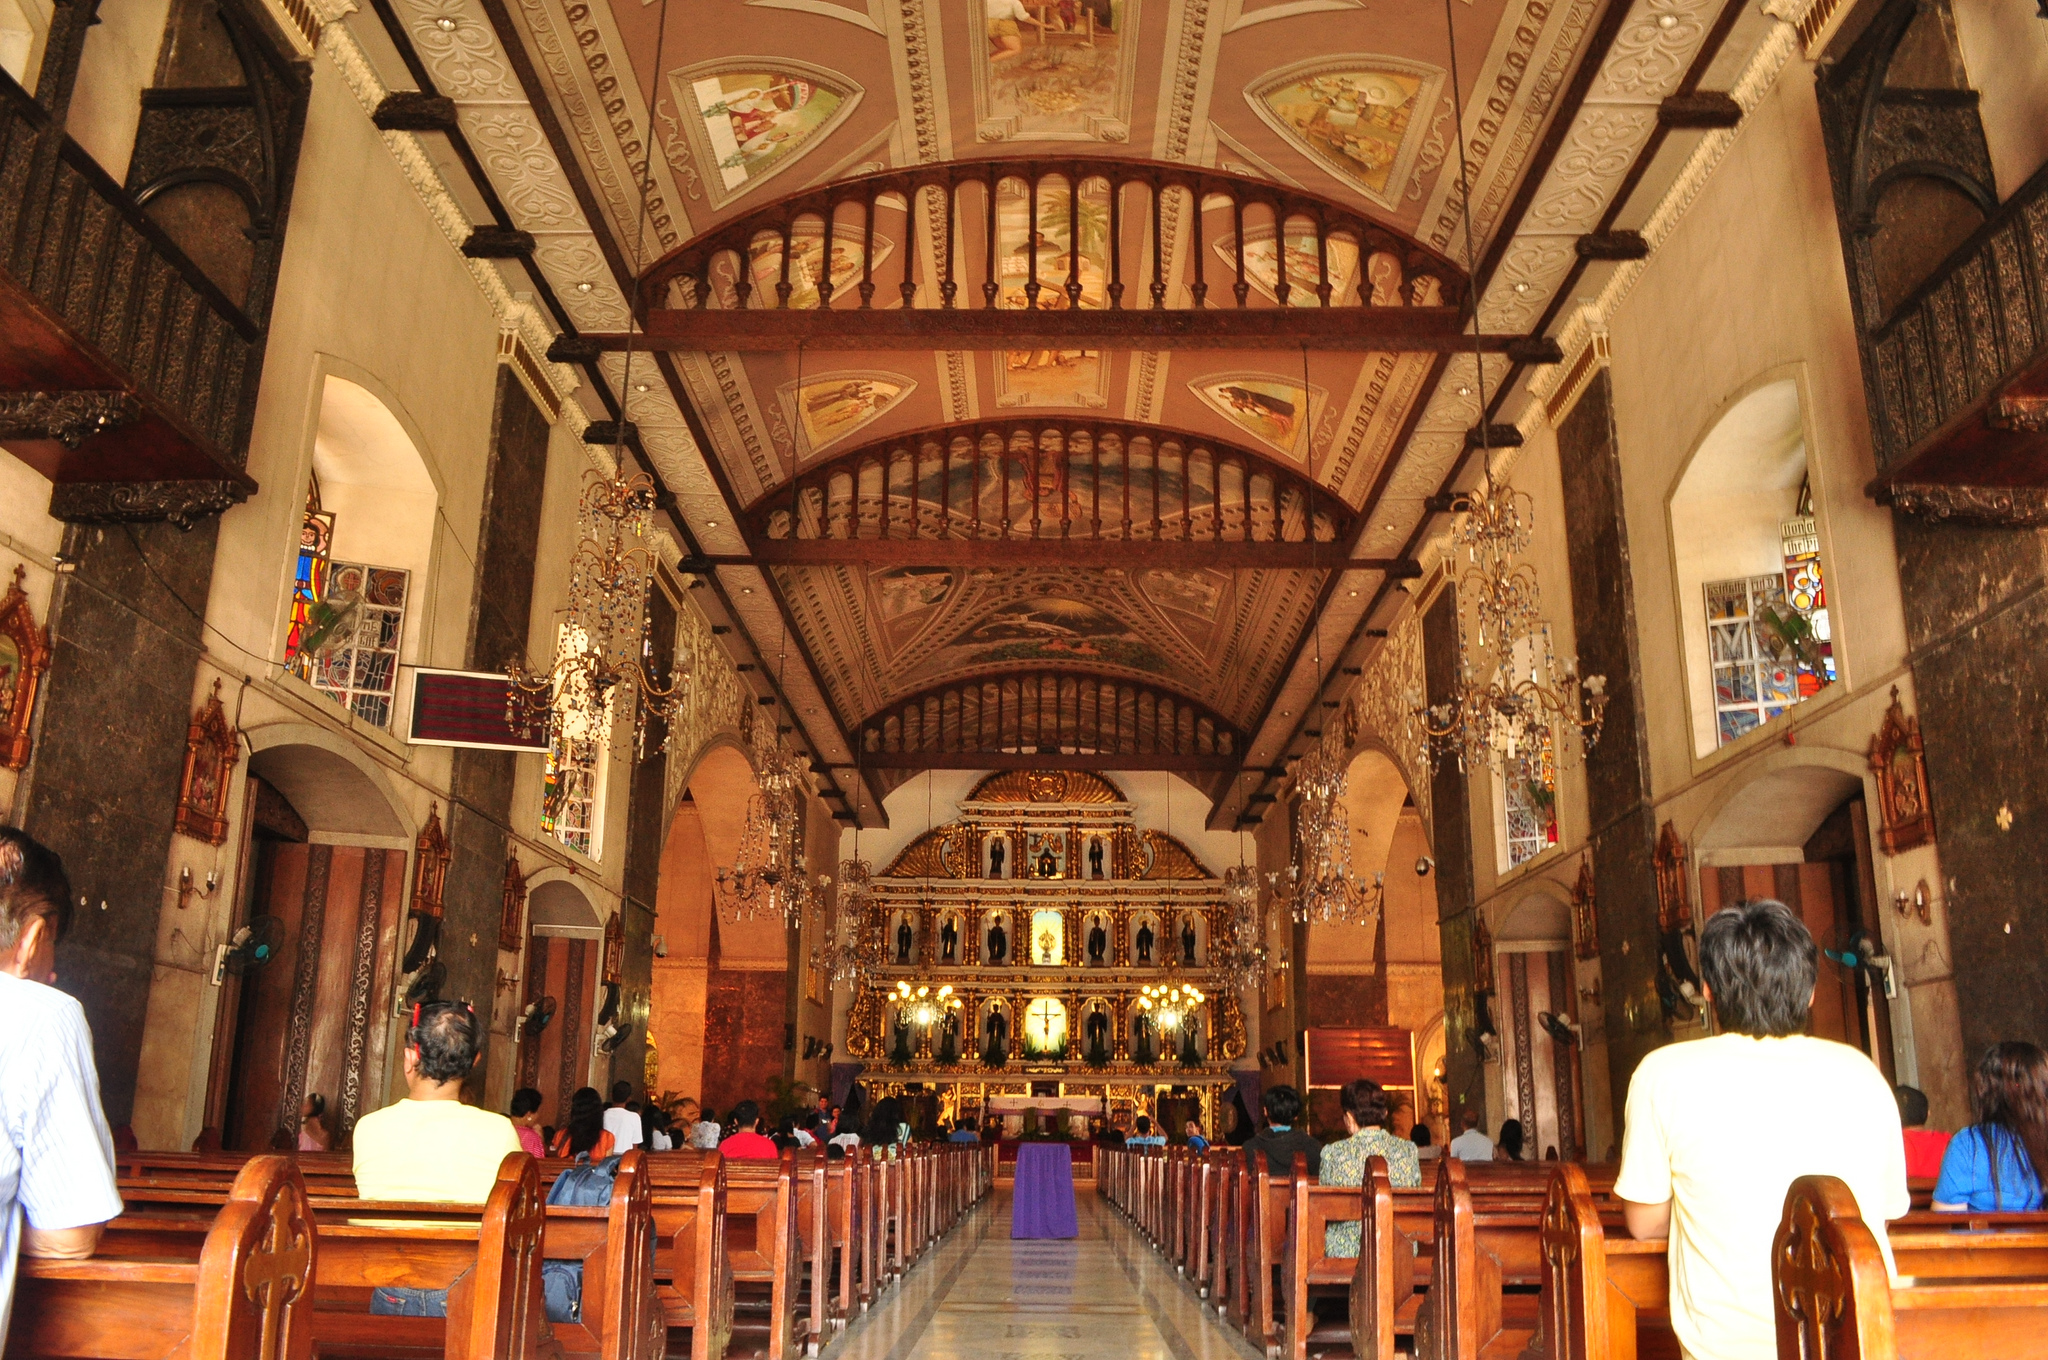 Basilica of Santo Niño de Cebu - Cebu City